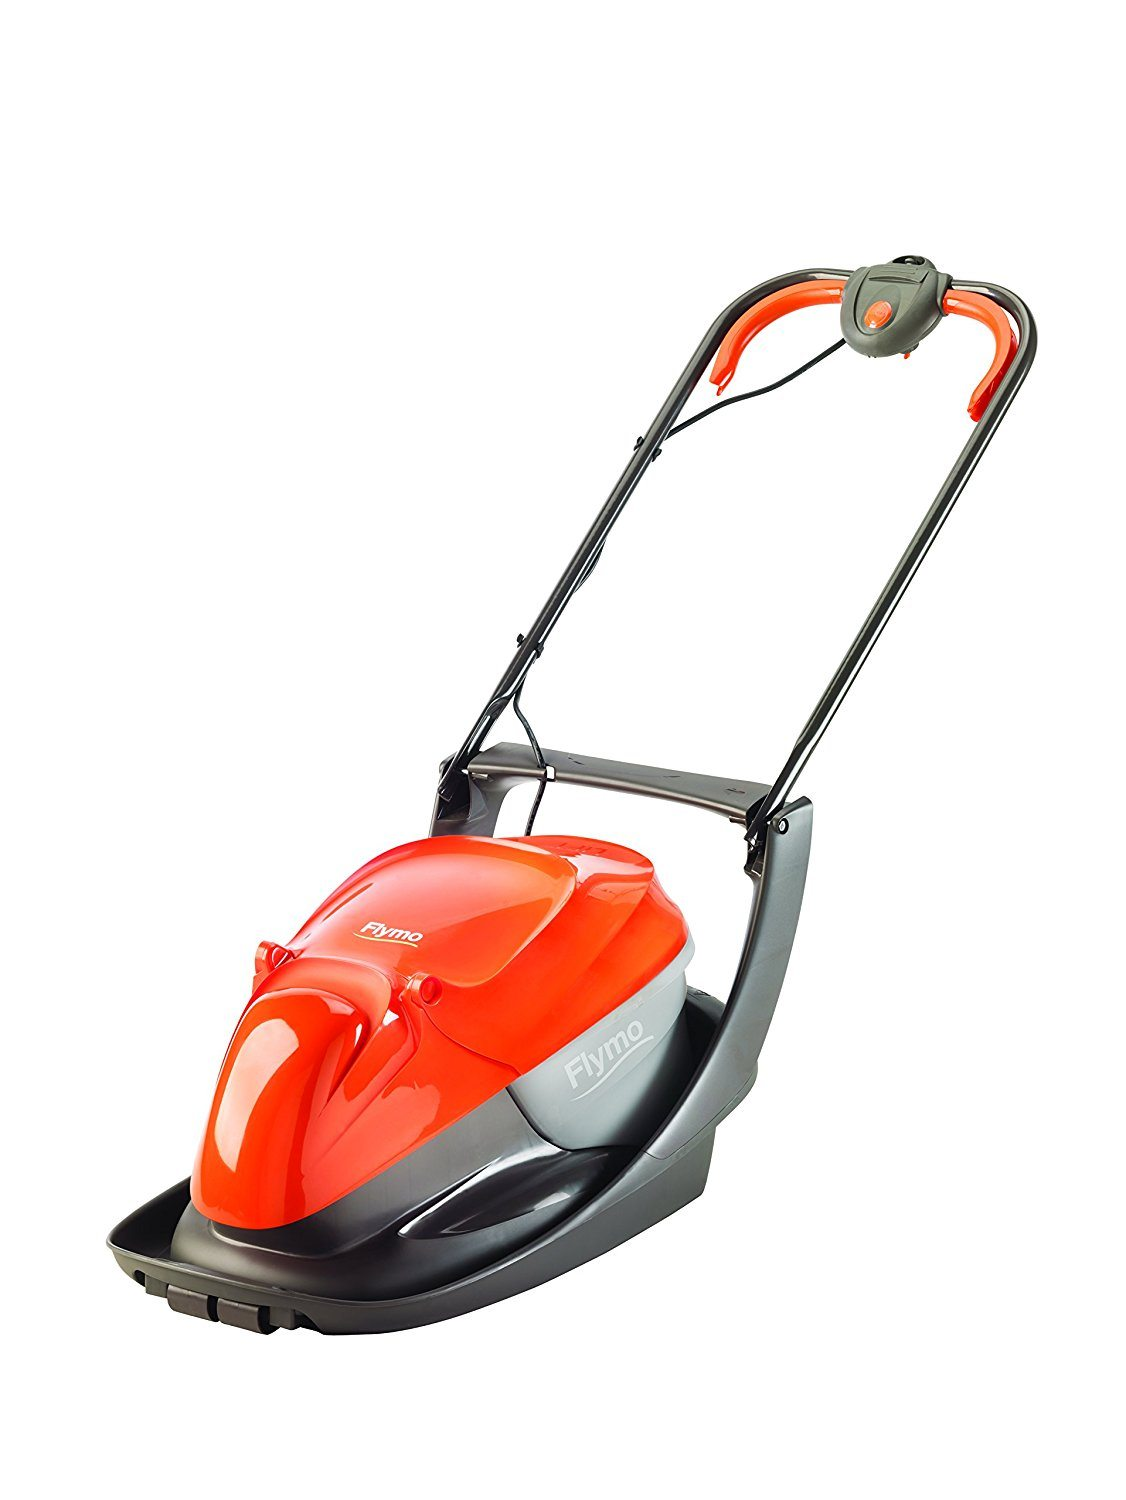 hover lawnmower reviews uk